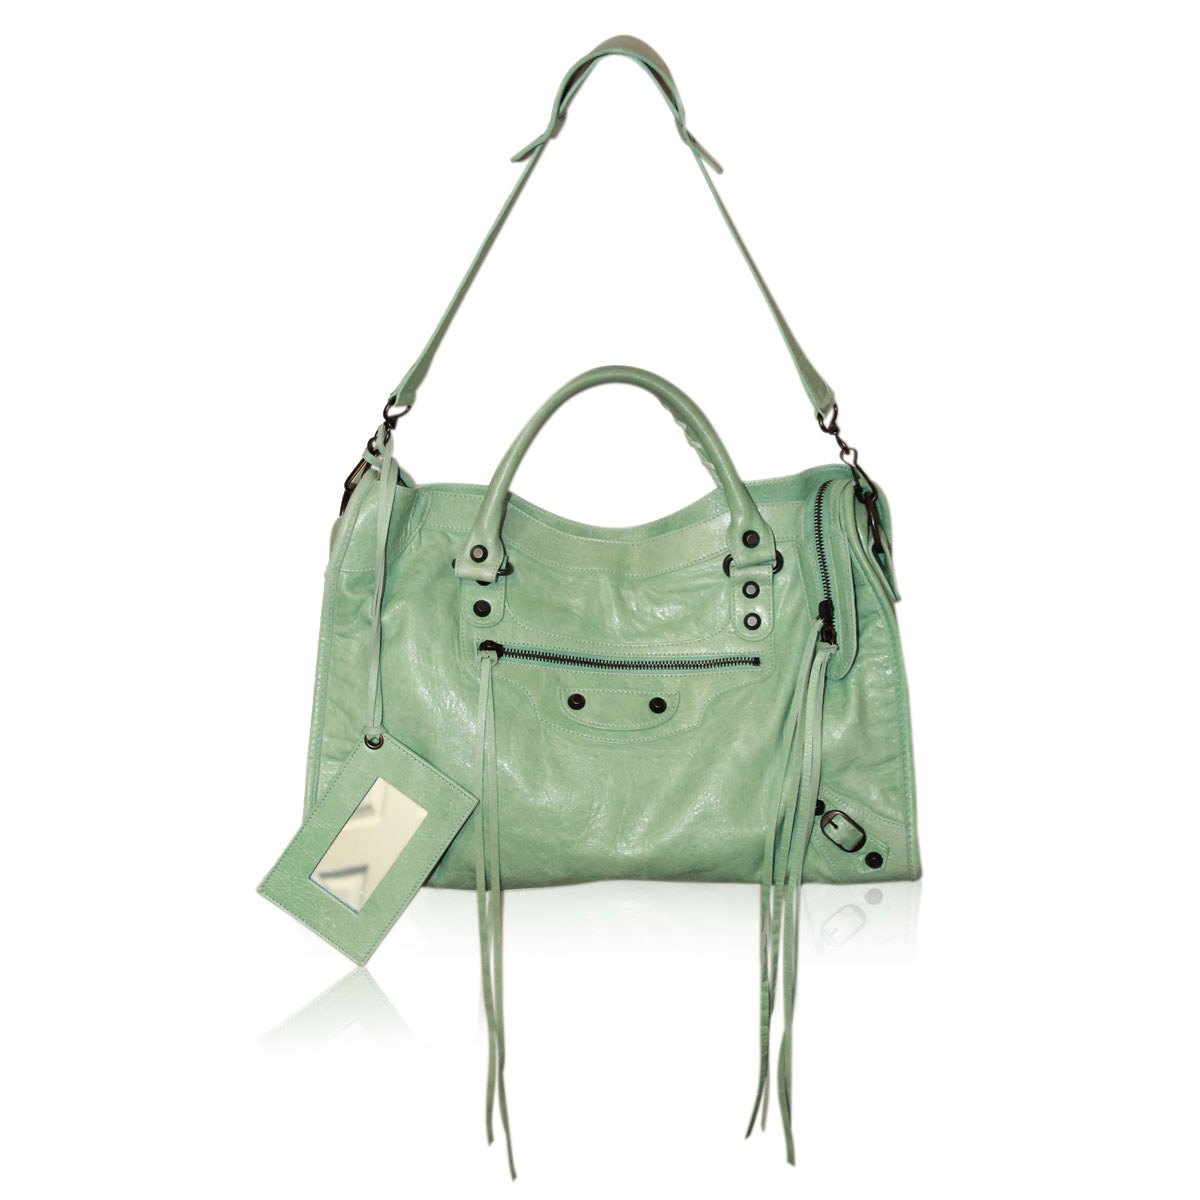 Balenciaga-Mint-gReen-cover